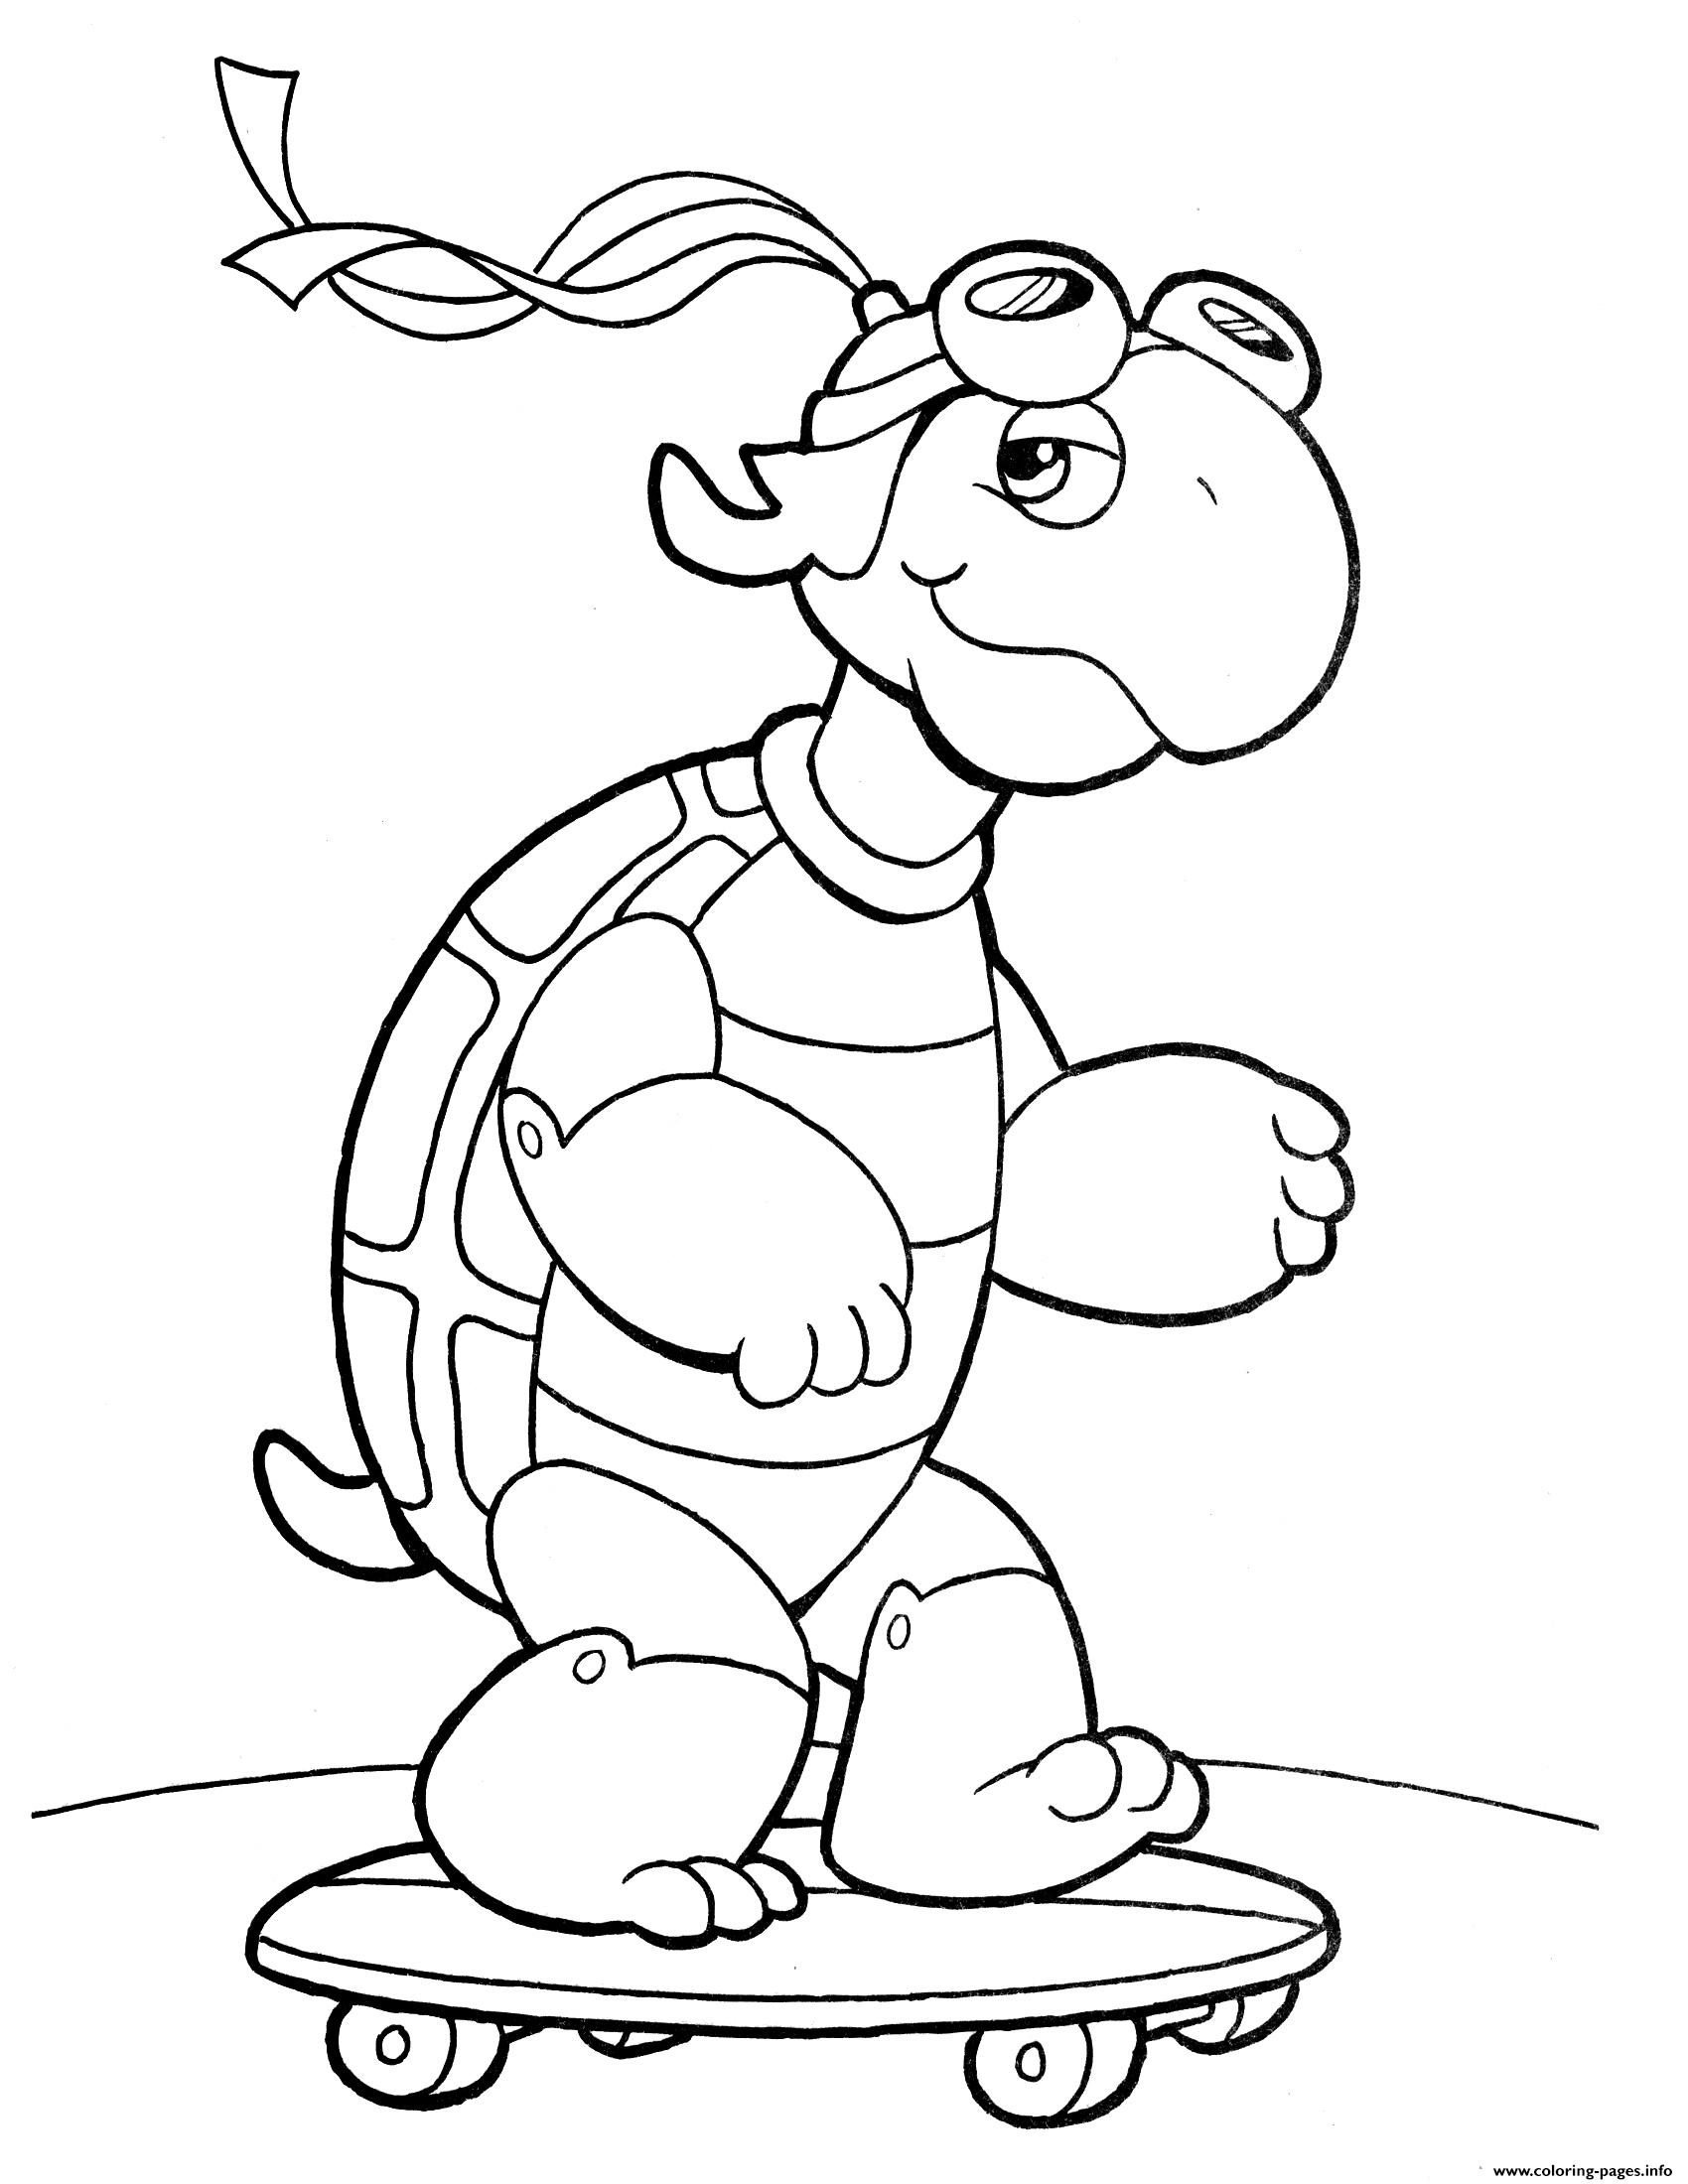 - Crayola Turtle Coloring Pages Printable